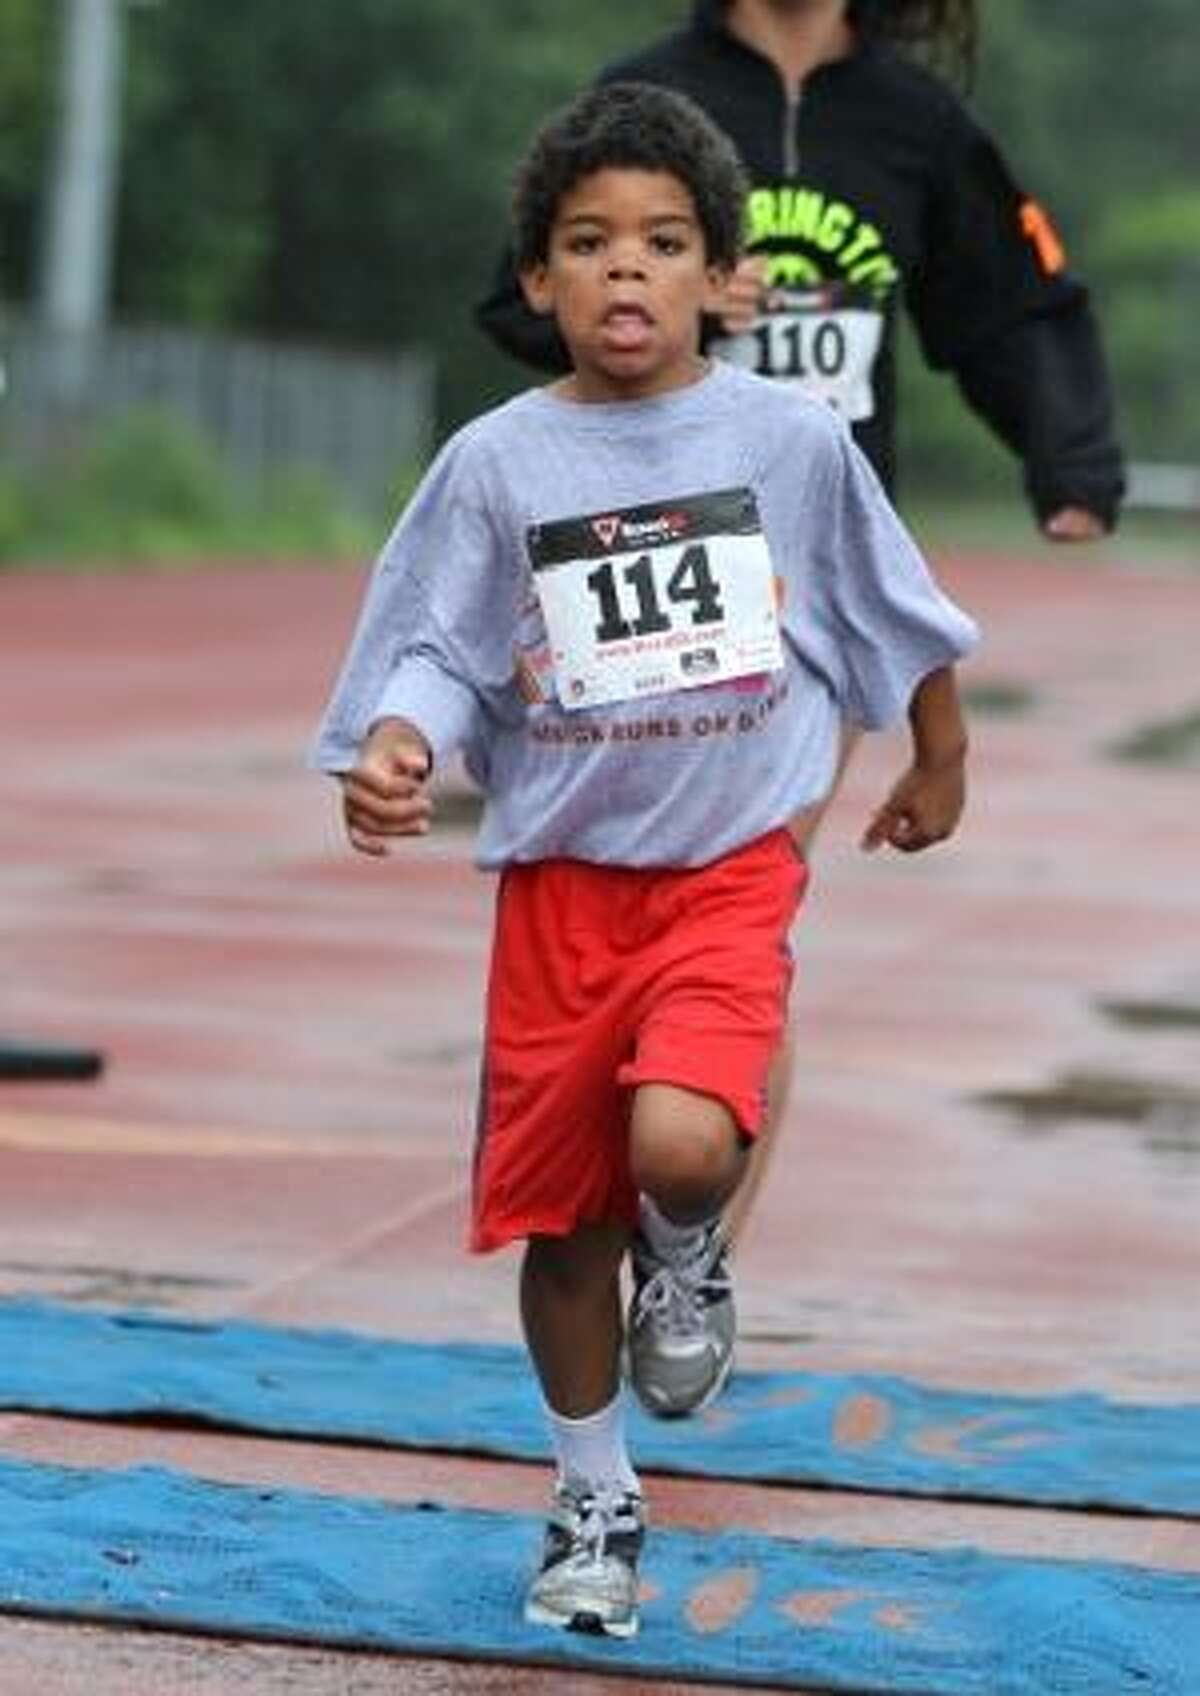 MARIANNE KILLACKEY/Register Citizen Correspondent Runners young and old participated in the first-ever Raider Run 5K.